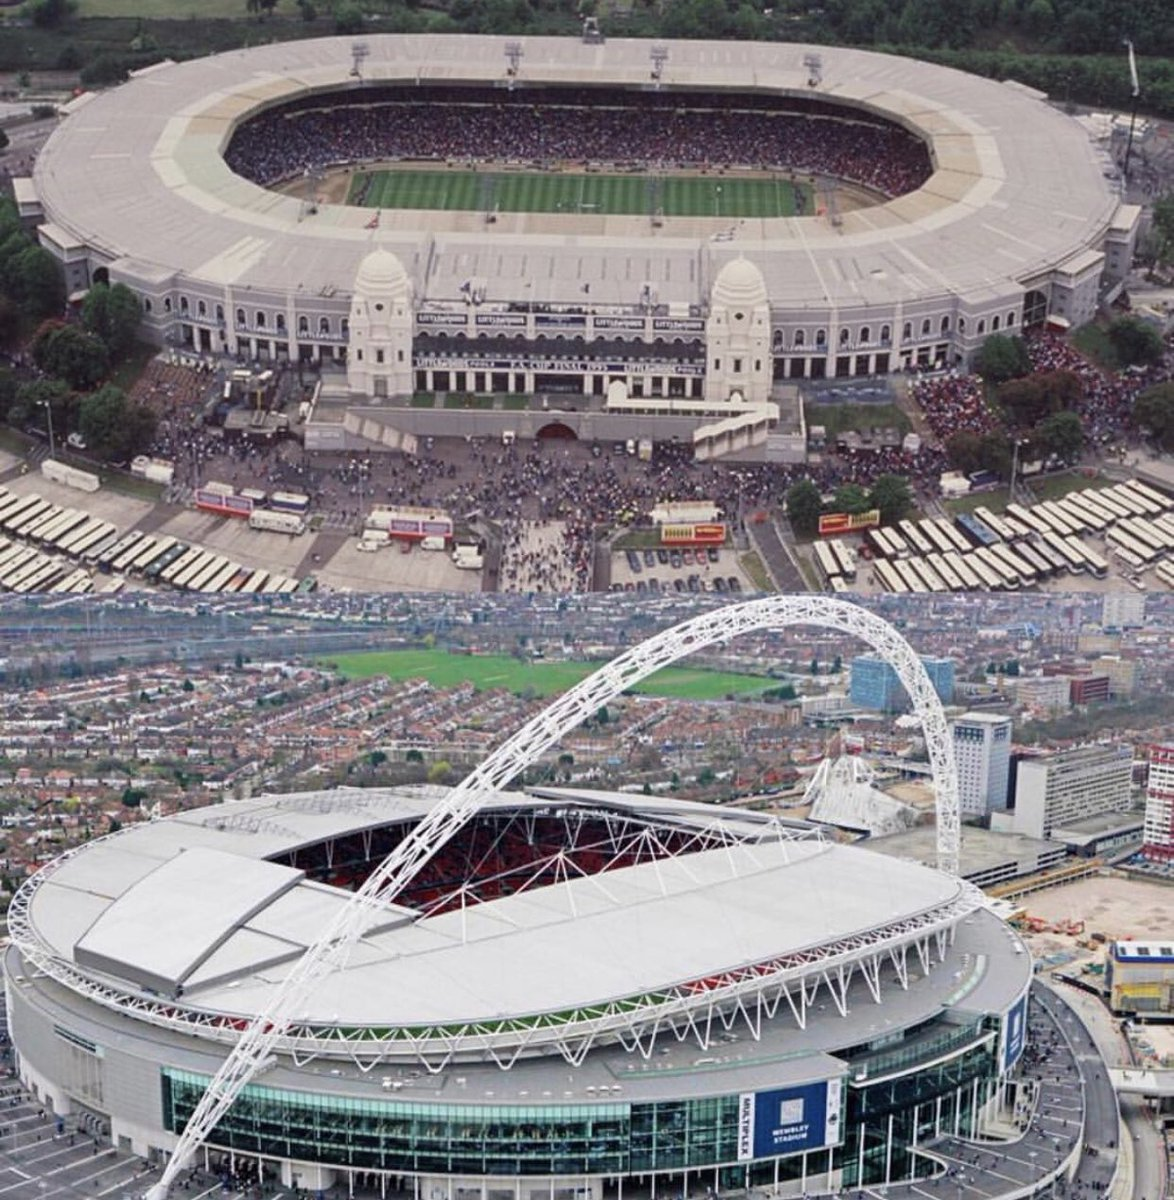 Retweet if you've see your team play at #Wembley